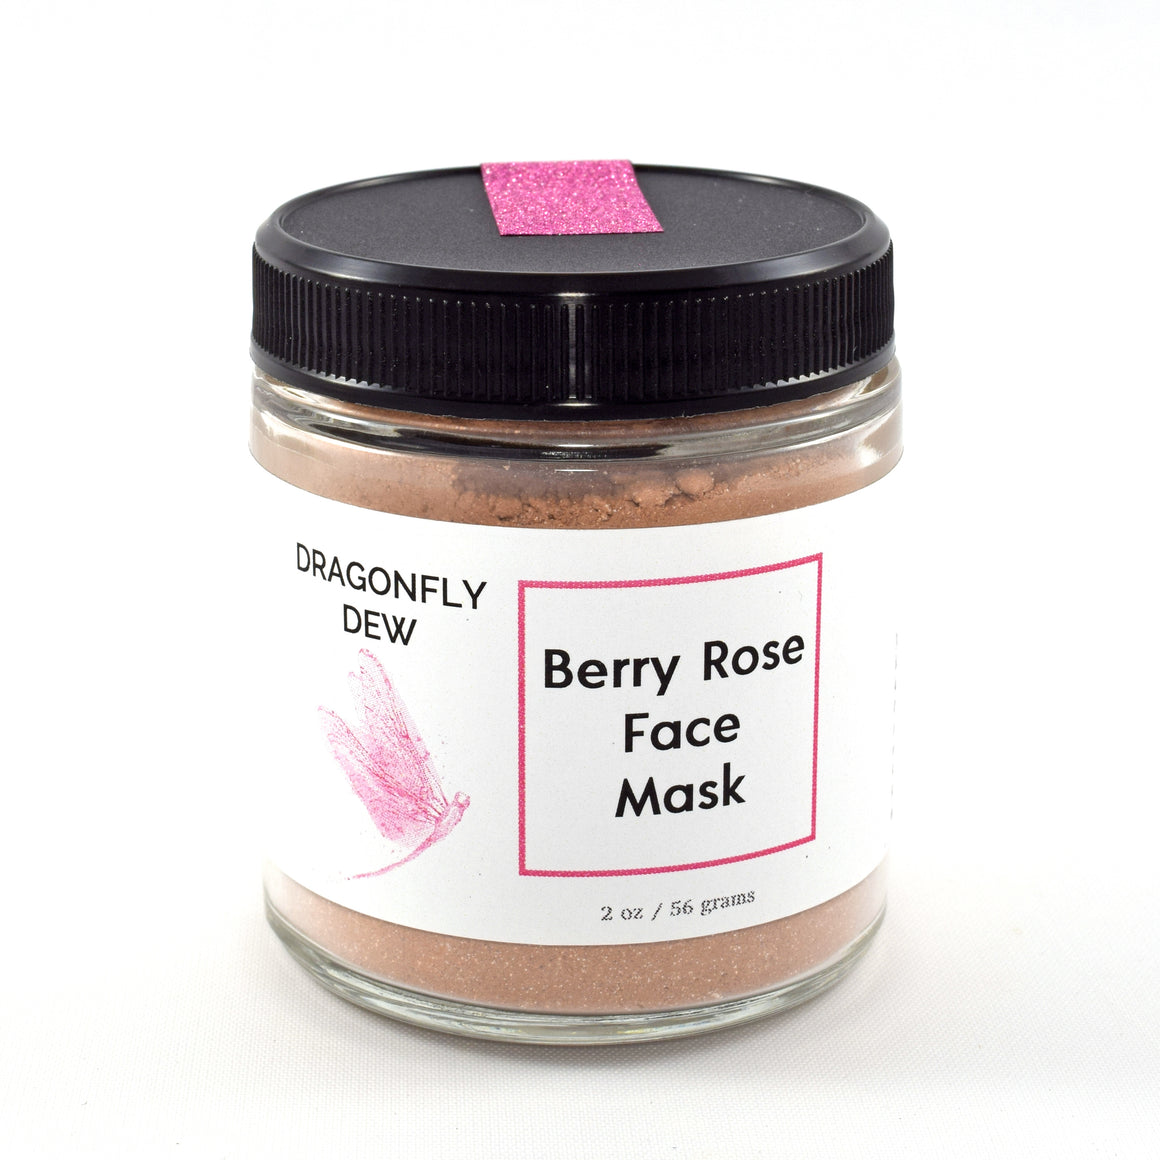 Beautiful Berry Rose Face Mask - Dragonfly Dew